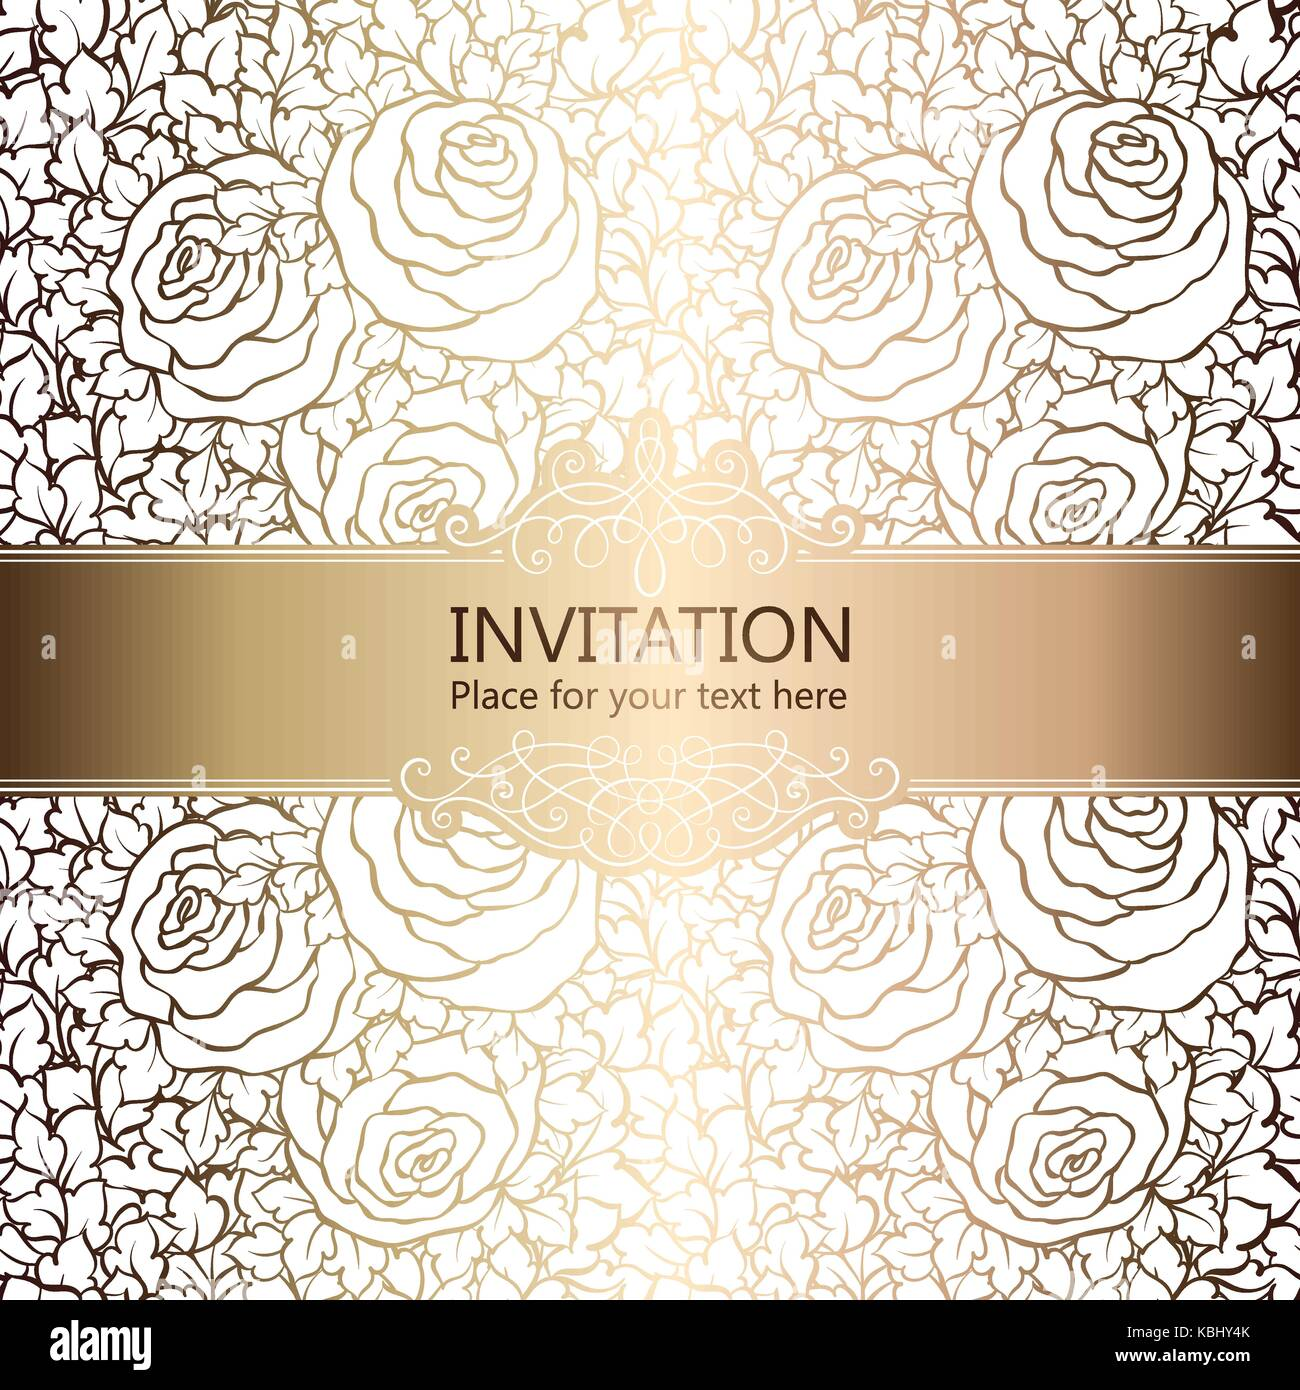 Abstract Background With Roses Luxury White And Gold Vintage Frame Victorian Banner Damask Floral Wallpaper Ornaments Invitation Card Baroque Sty